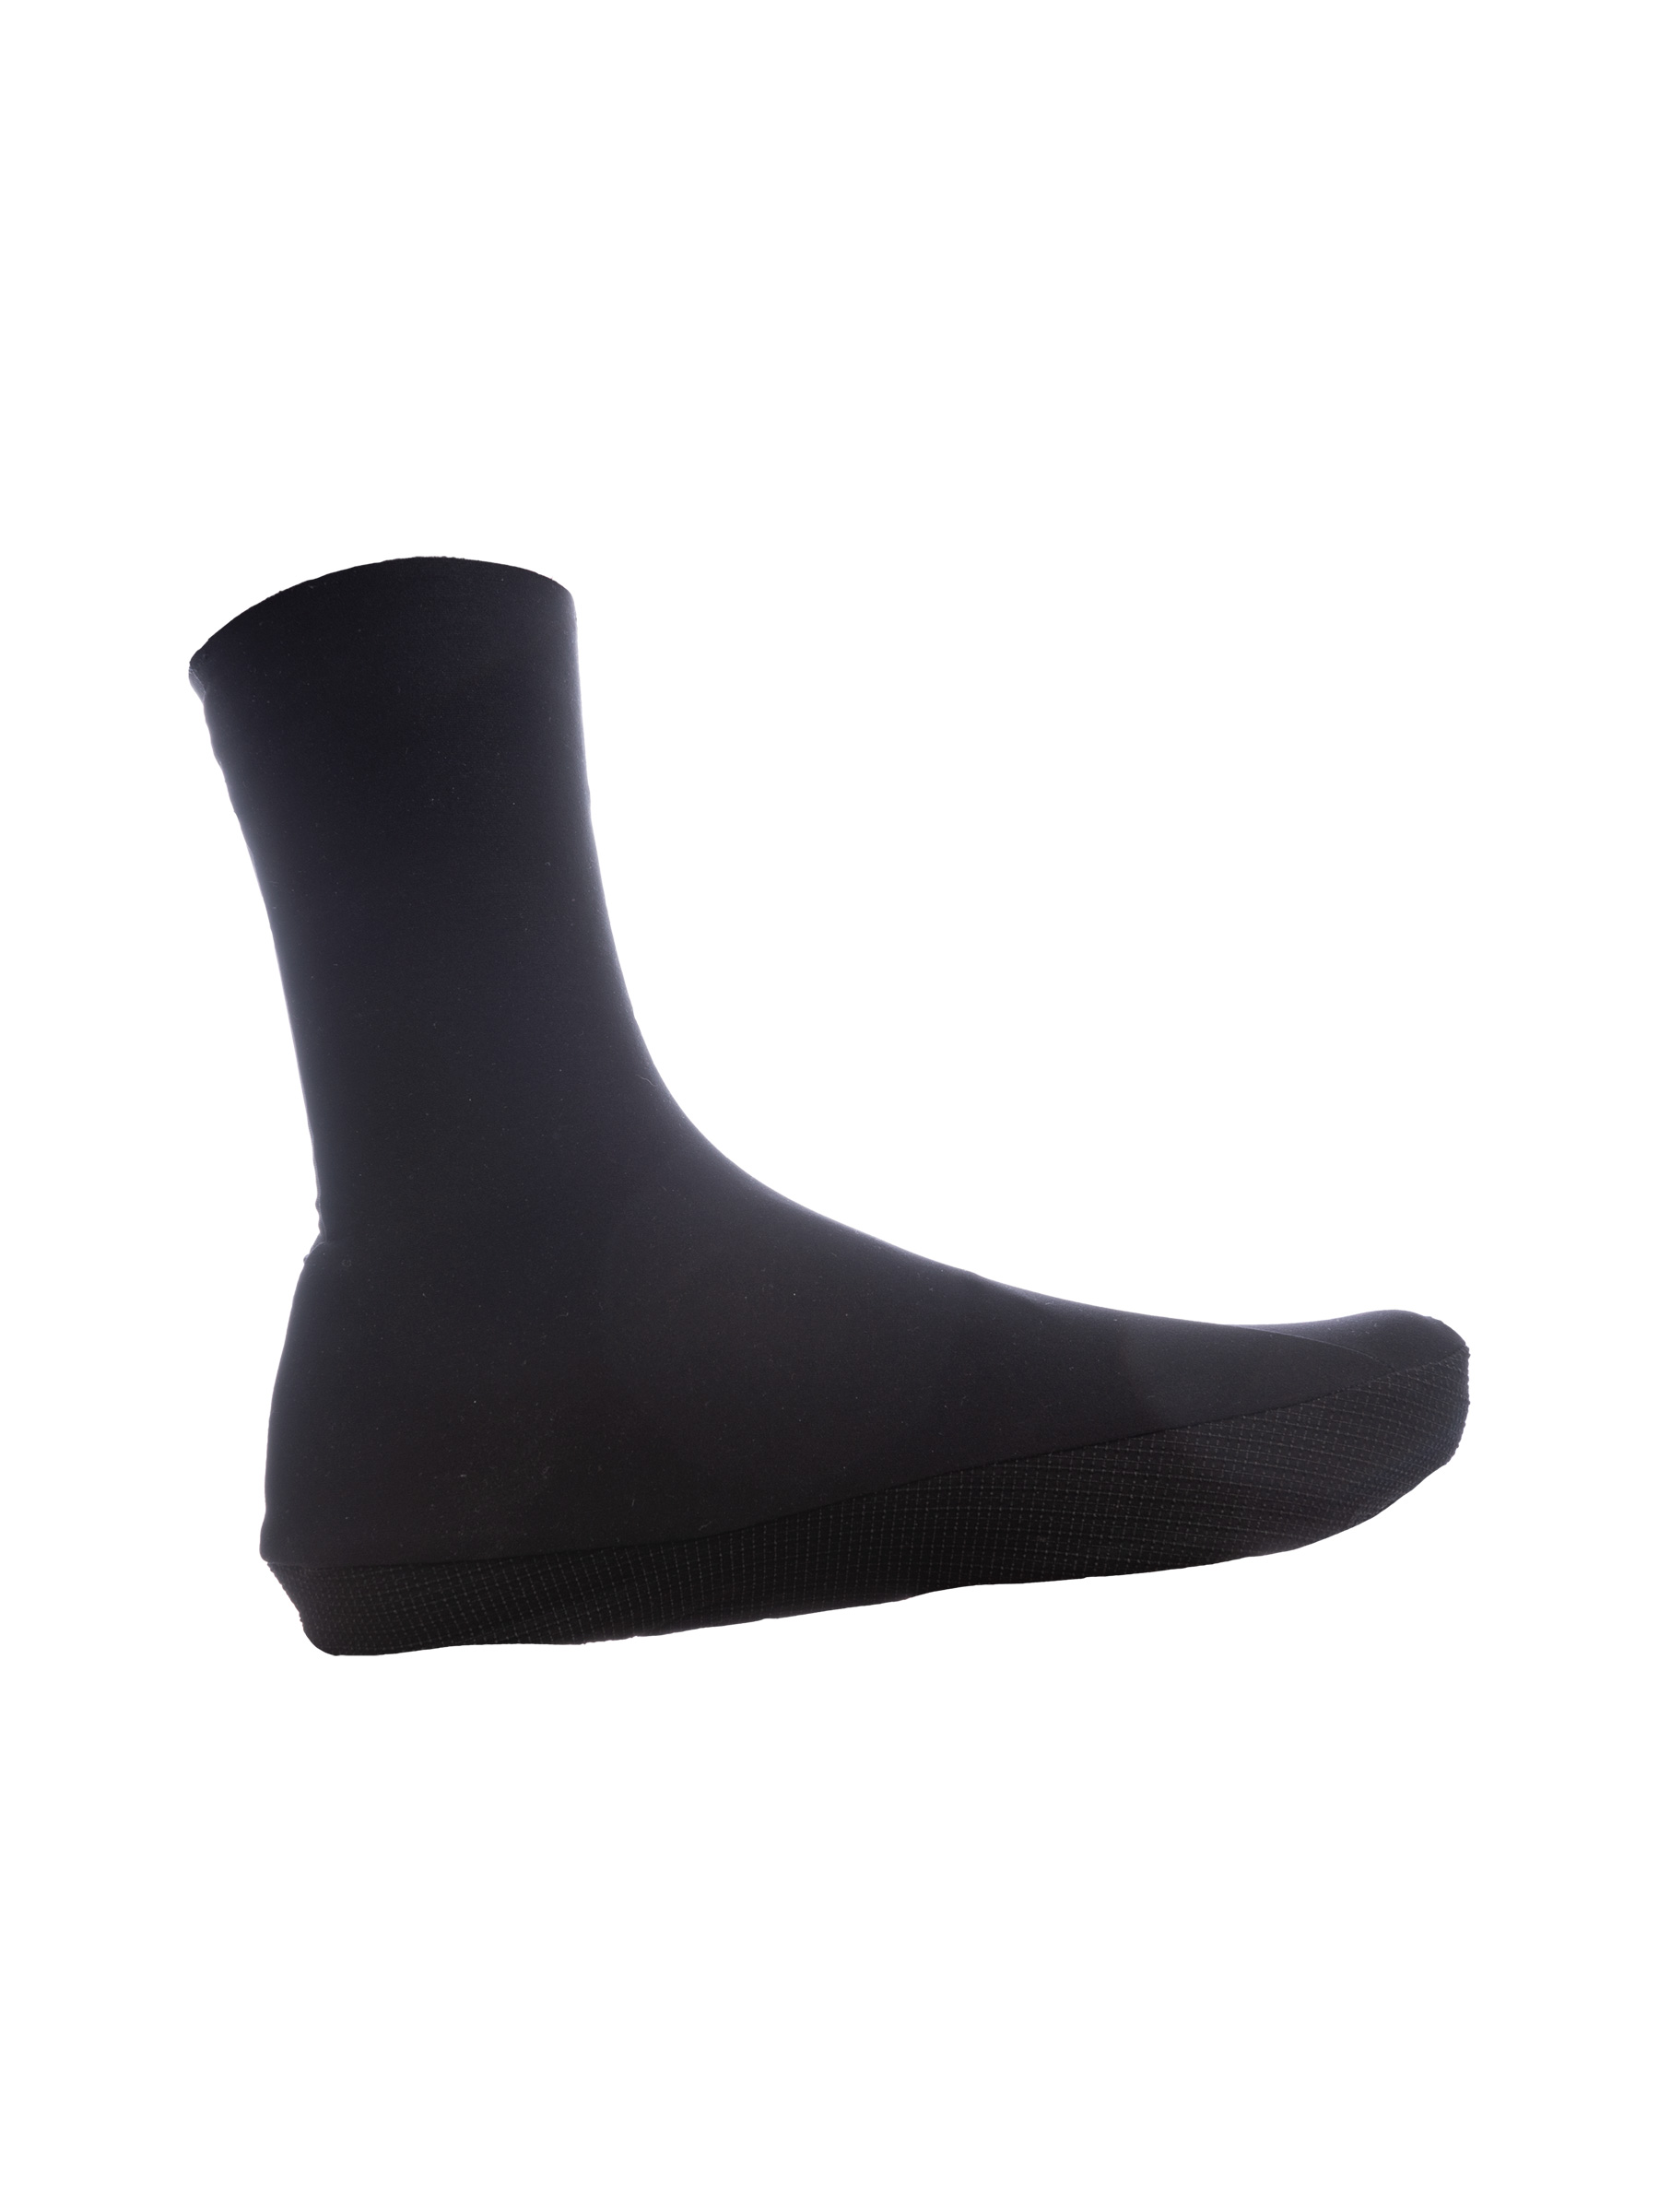 Hybrid Overshoes